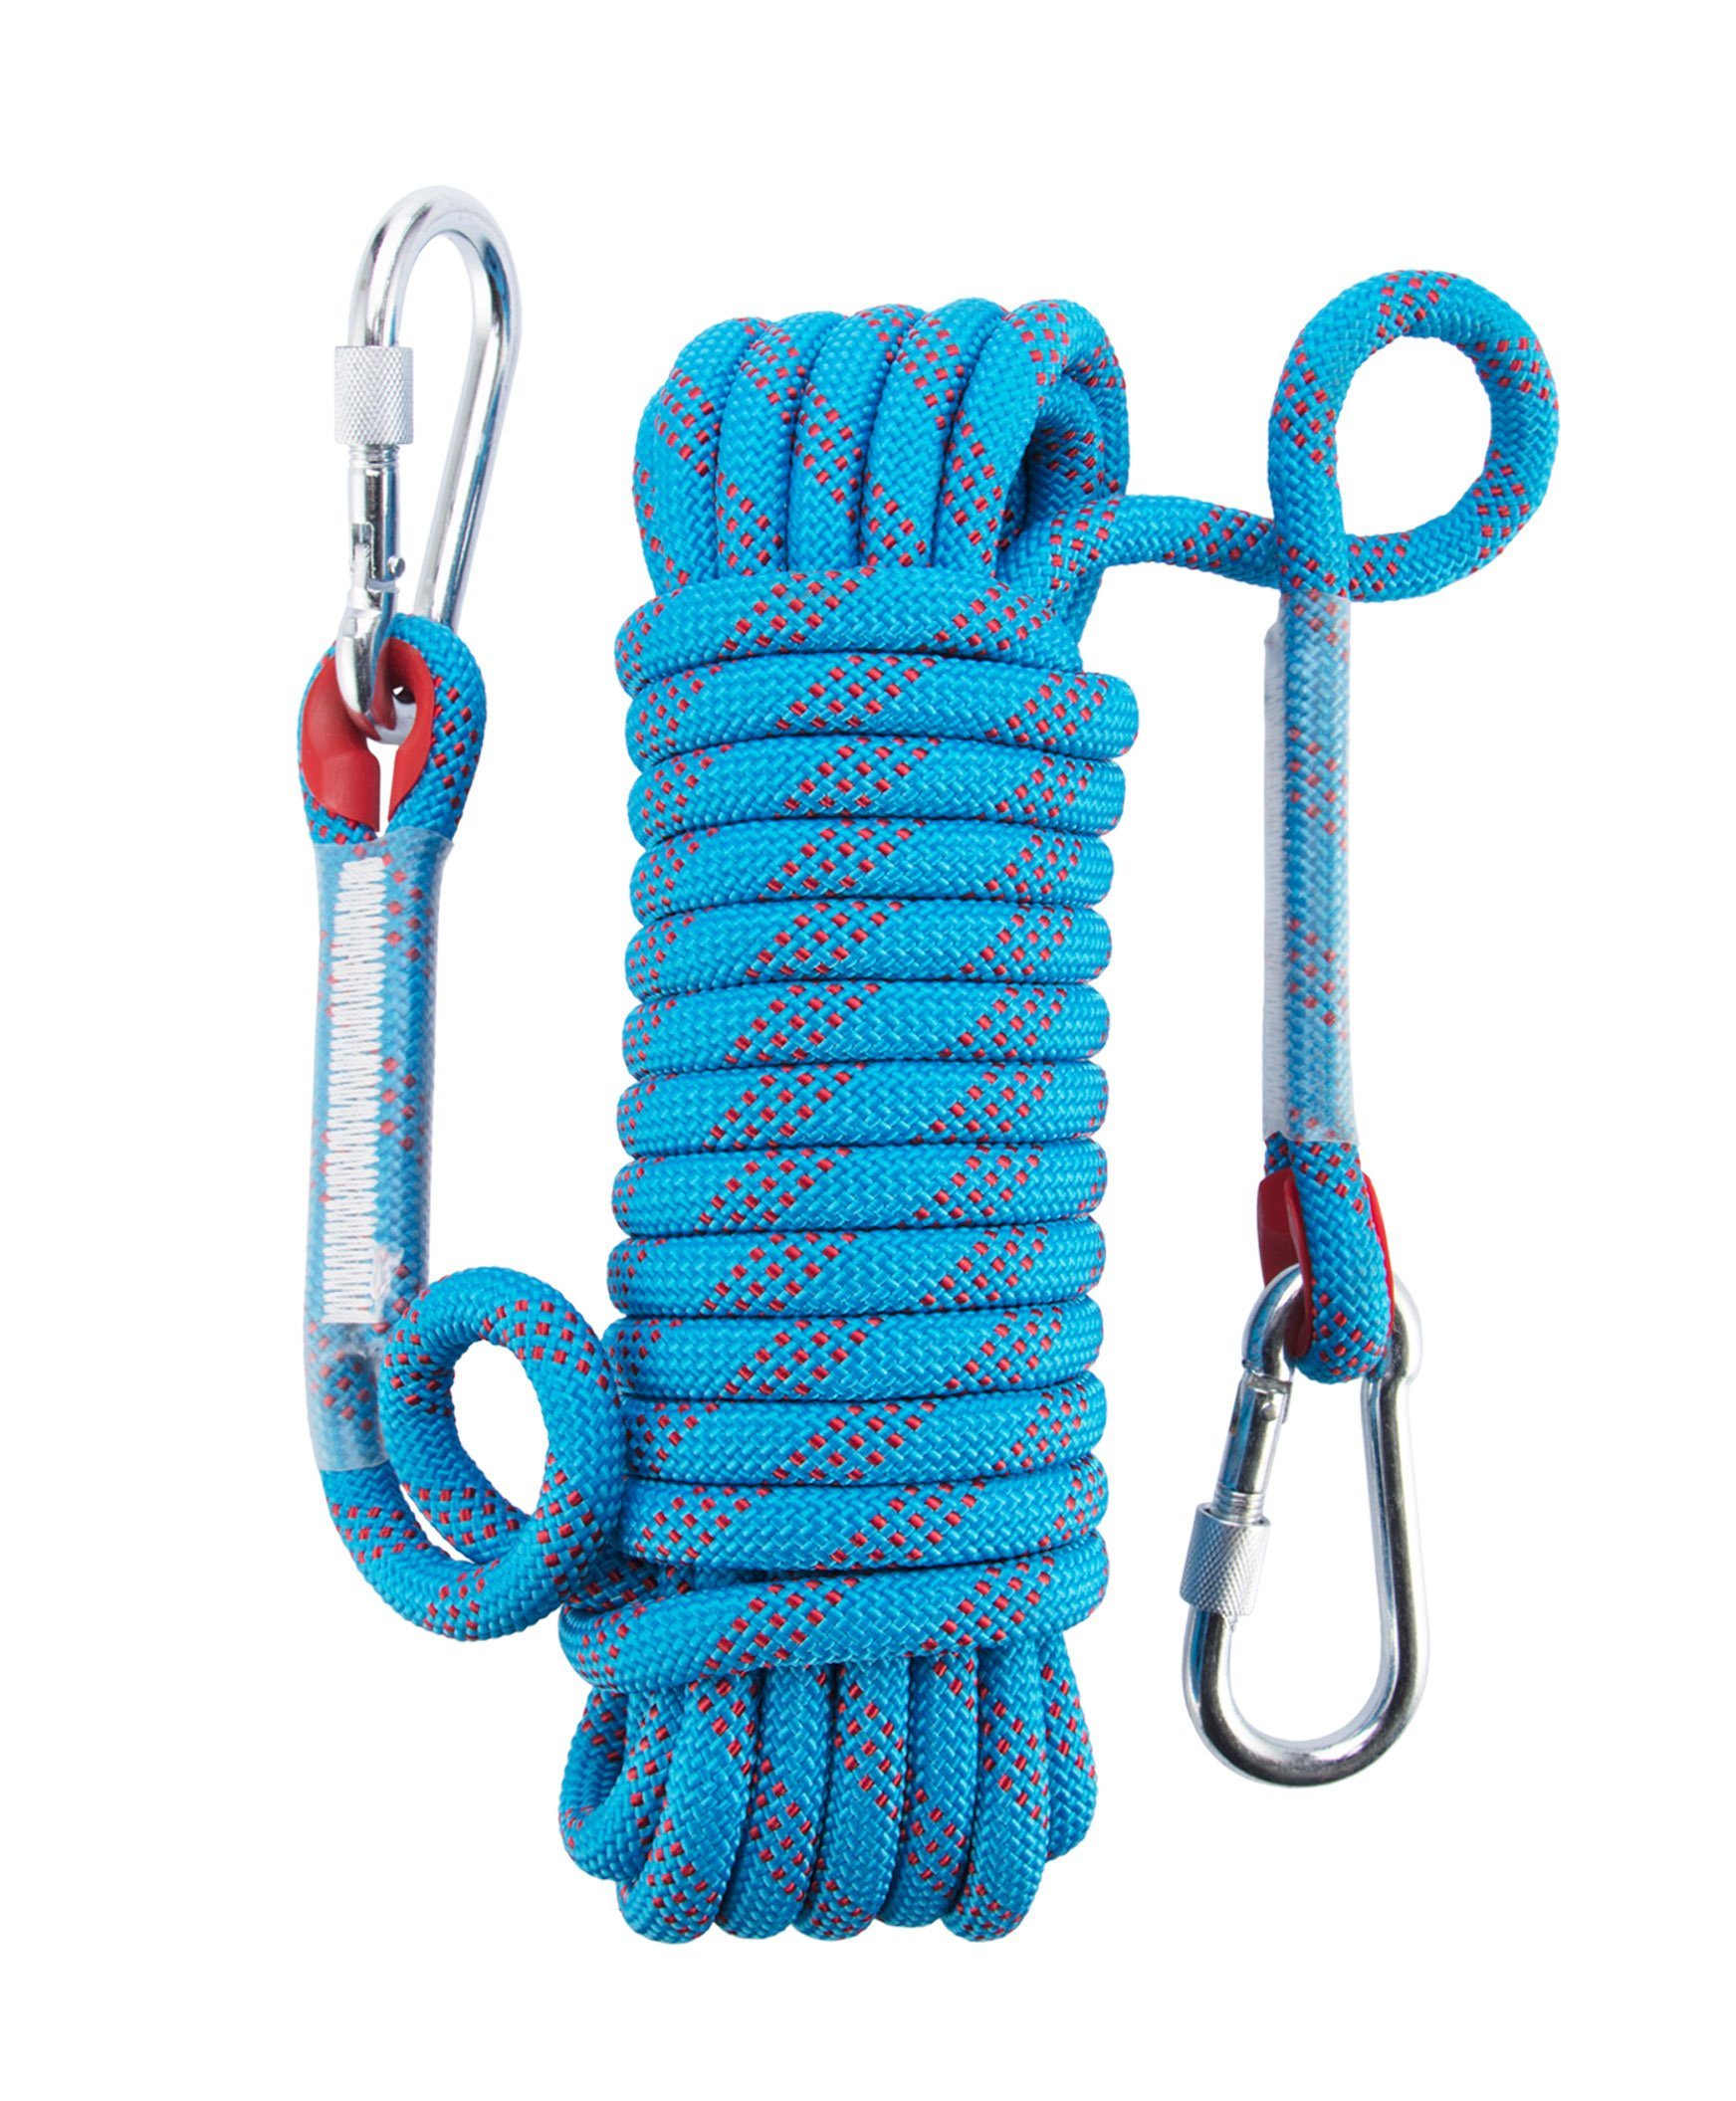 Ahyapiner Outdoor Rock Climbing Rope Mountaineering High Strength Life-Saving Static Rope(32.8ft Blue)